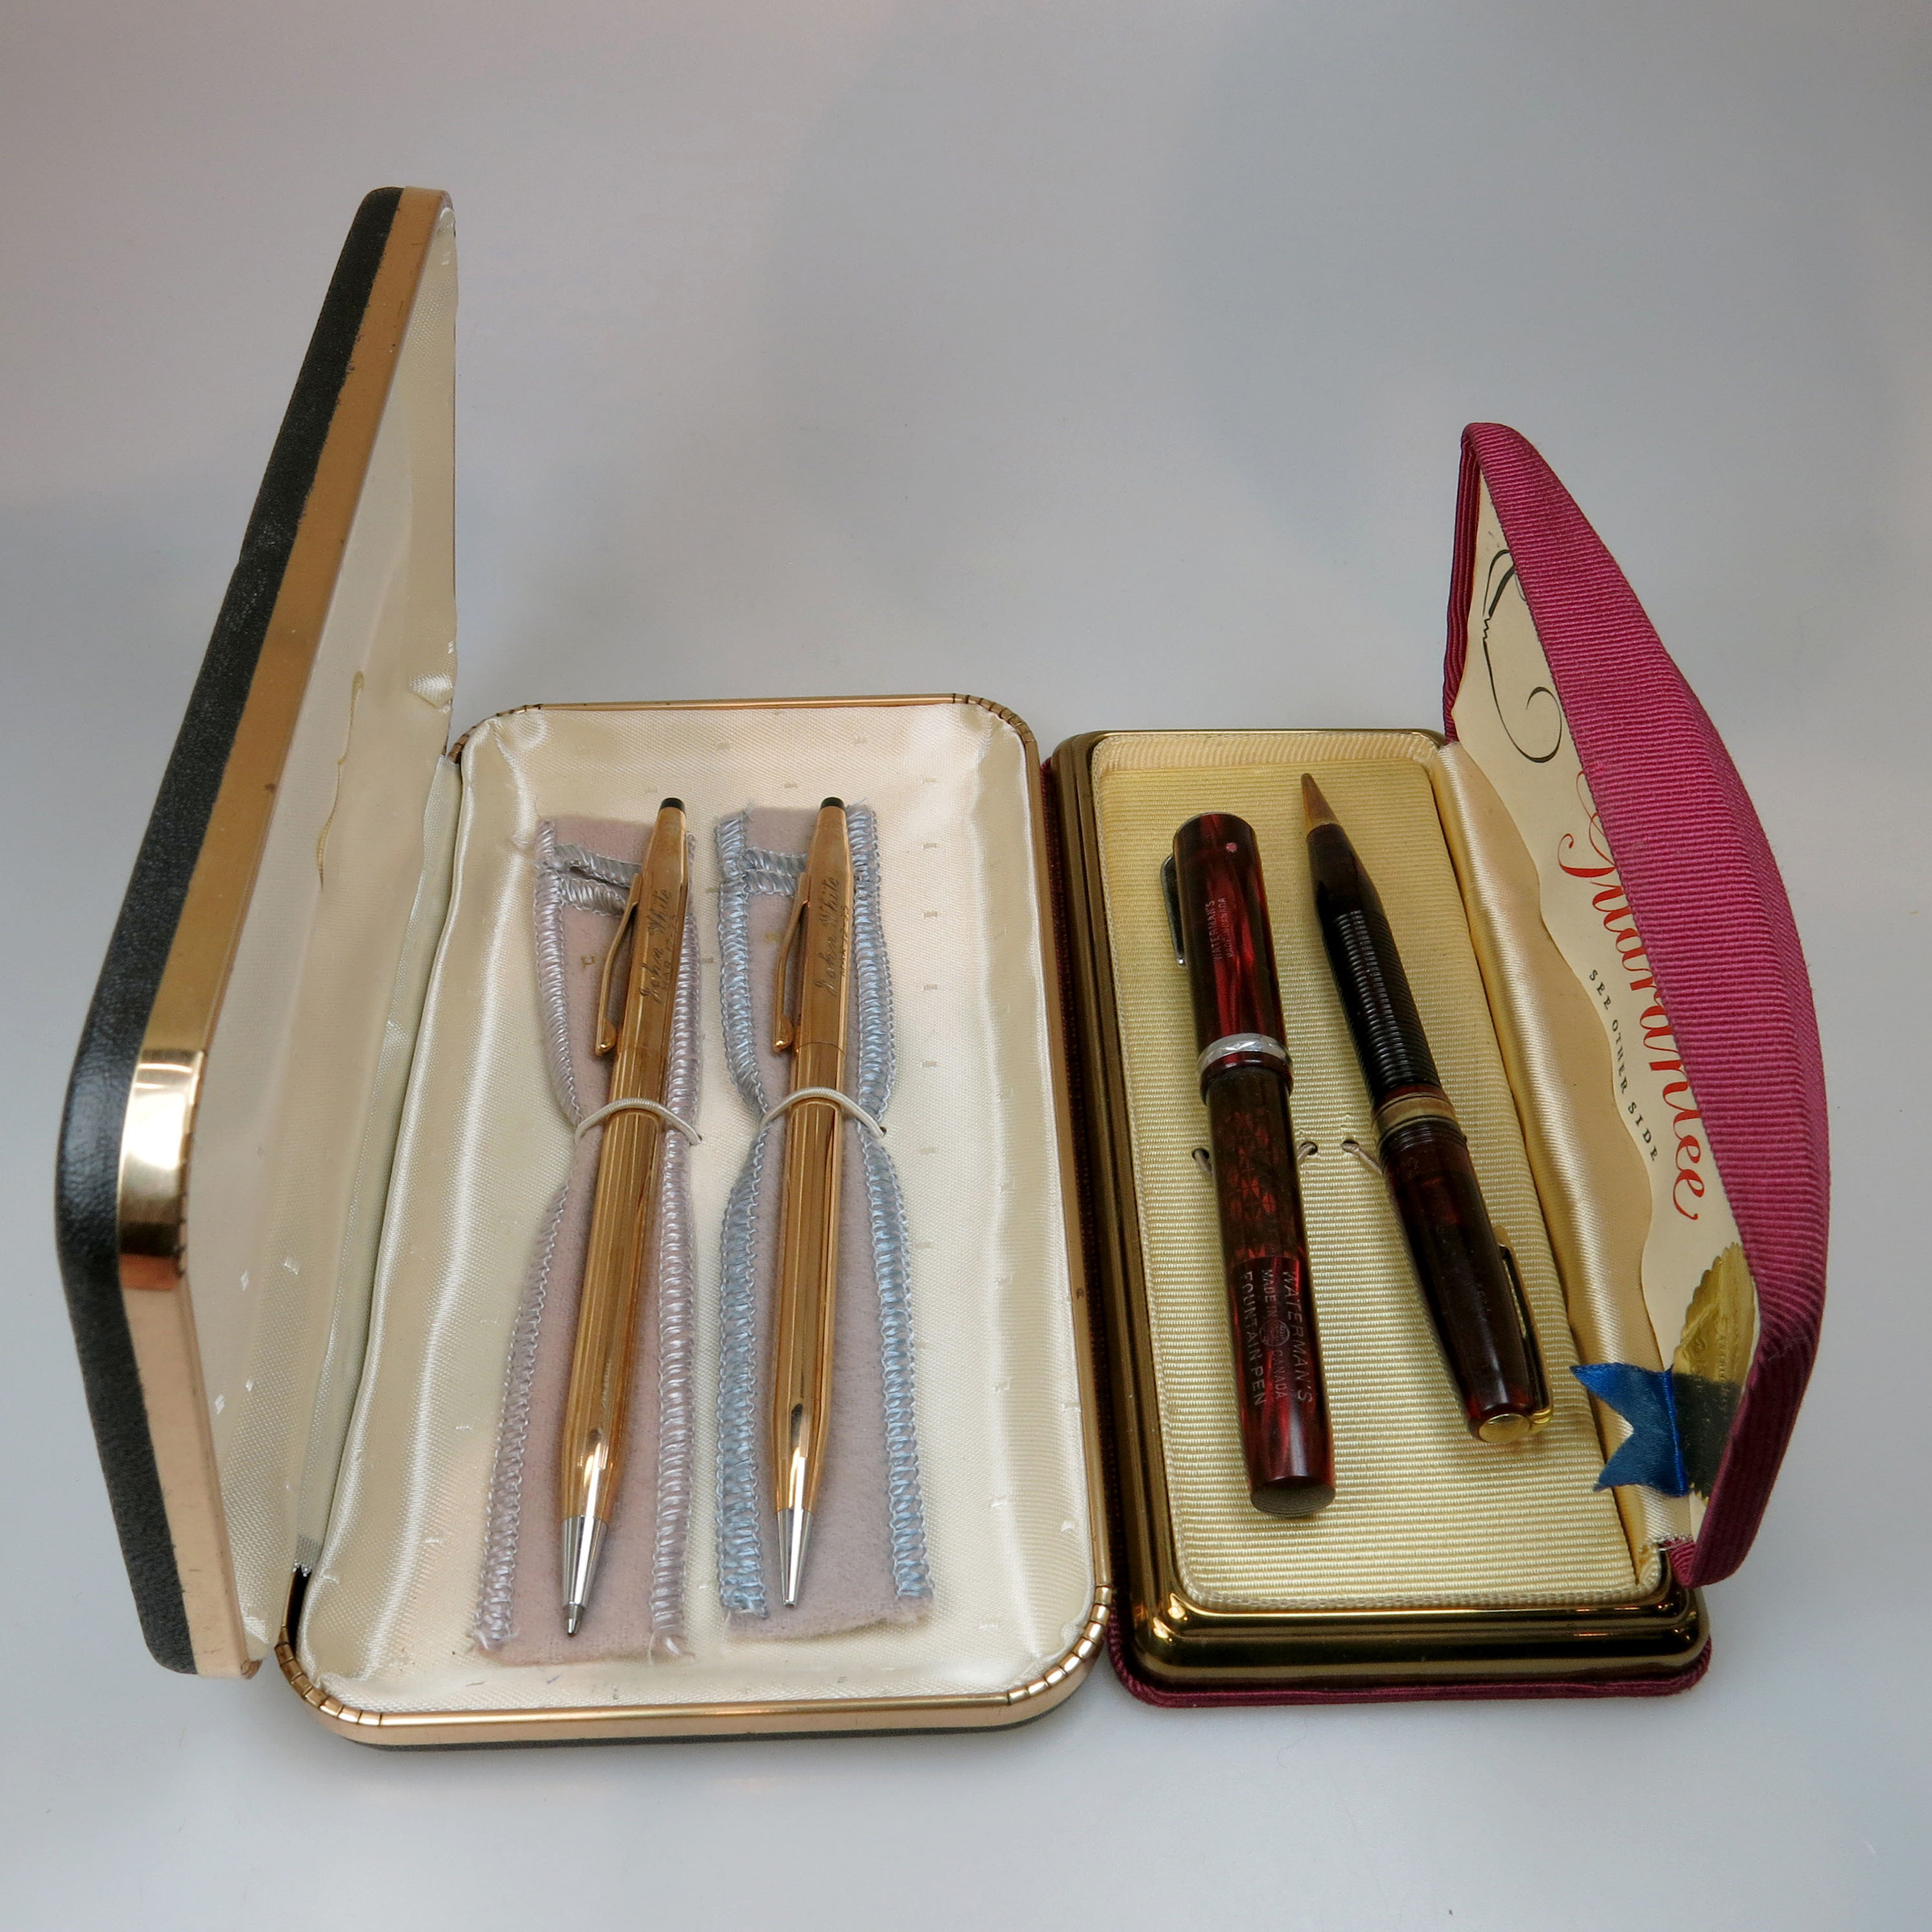 Two Pen And Pencil Sets In Cases